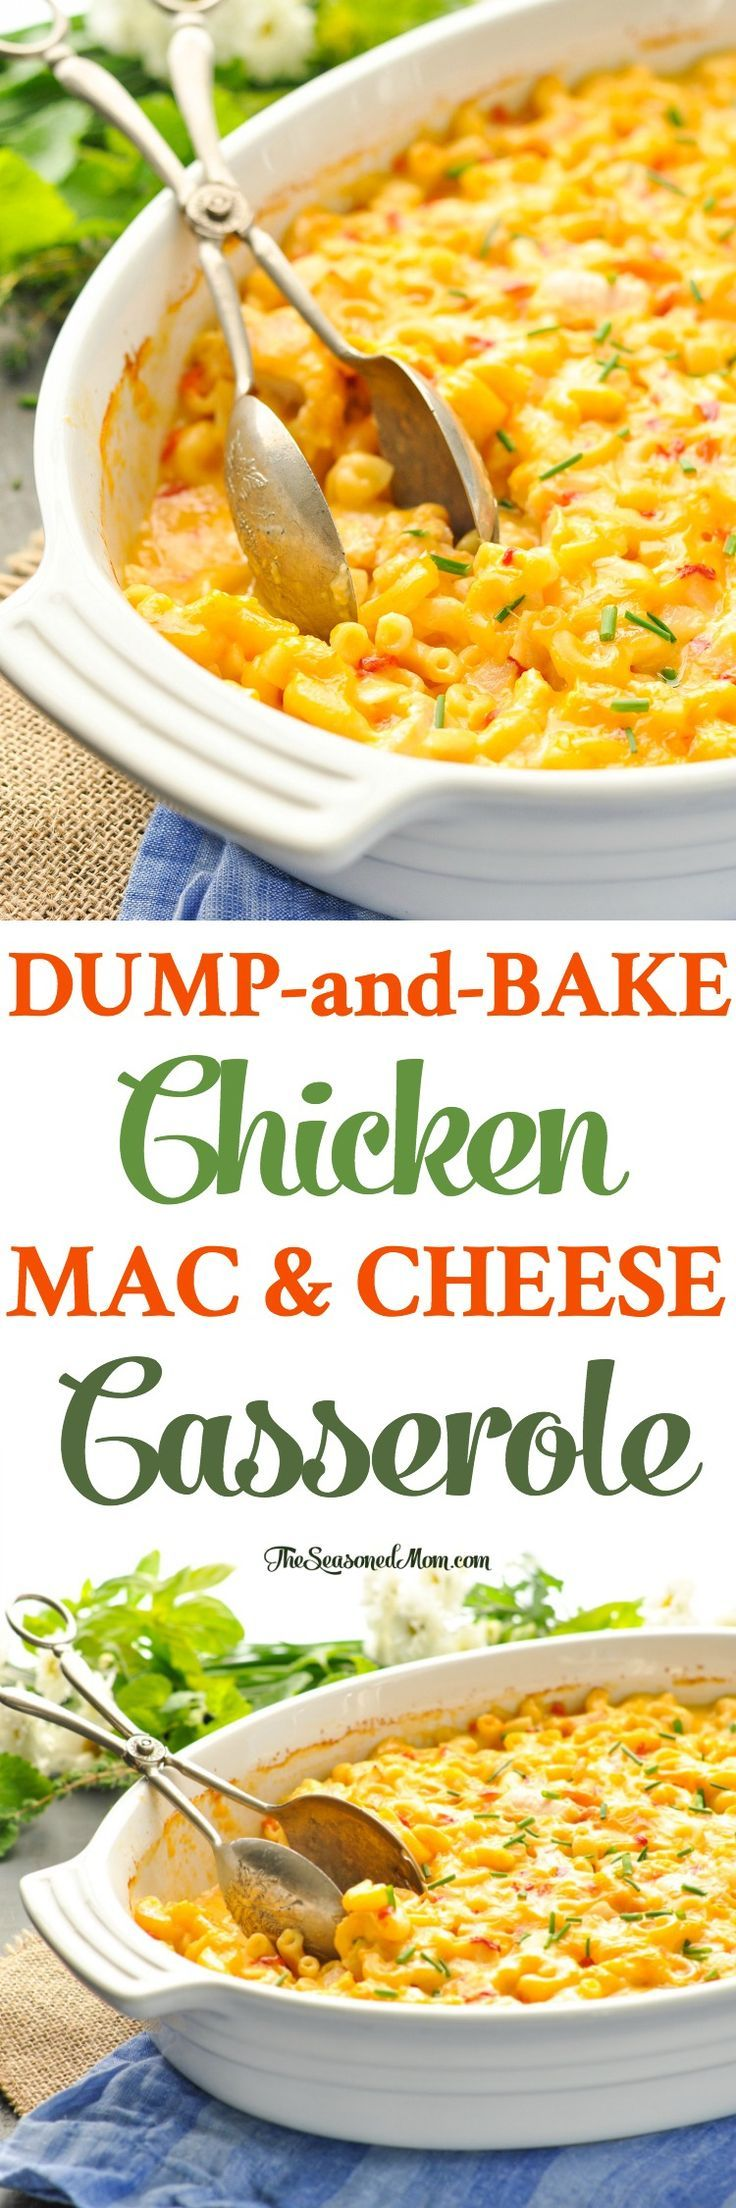 This 10-minute Dump-and-Bake Chicken Mac and Cheese Casserole is a one dish make-ahead dinner recipe that your family will love! Chicken Breast Recipes | Pasta Recipes | Casserole | One Pot Meals #chicken #onepotmeals #pasta #dinner